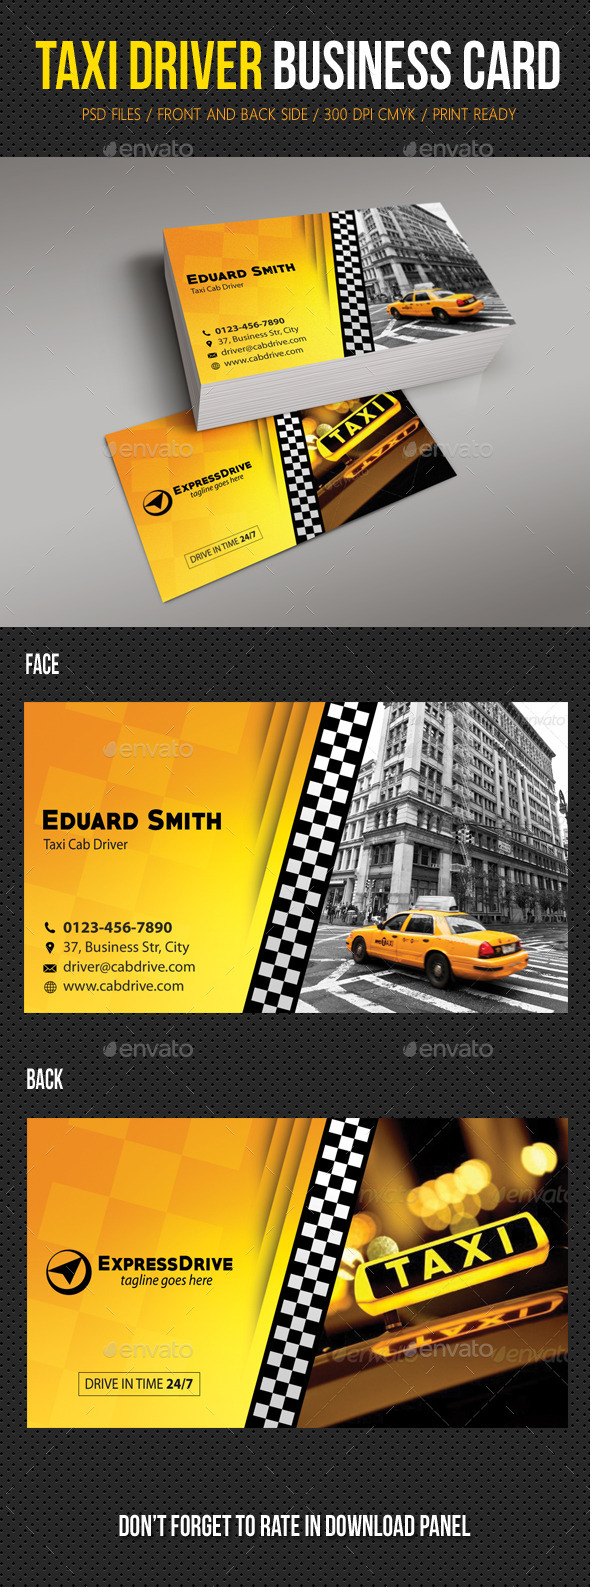 Taxi Driver Cab Business Card by rapidgraf | GraphicRiver